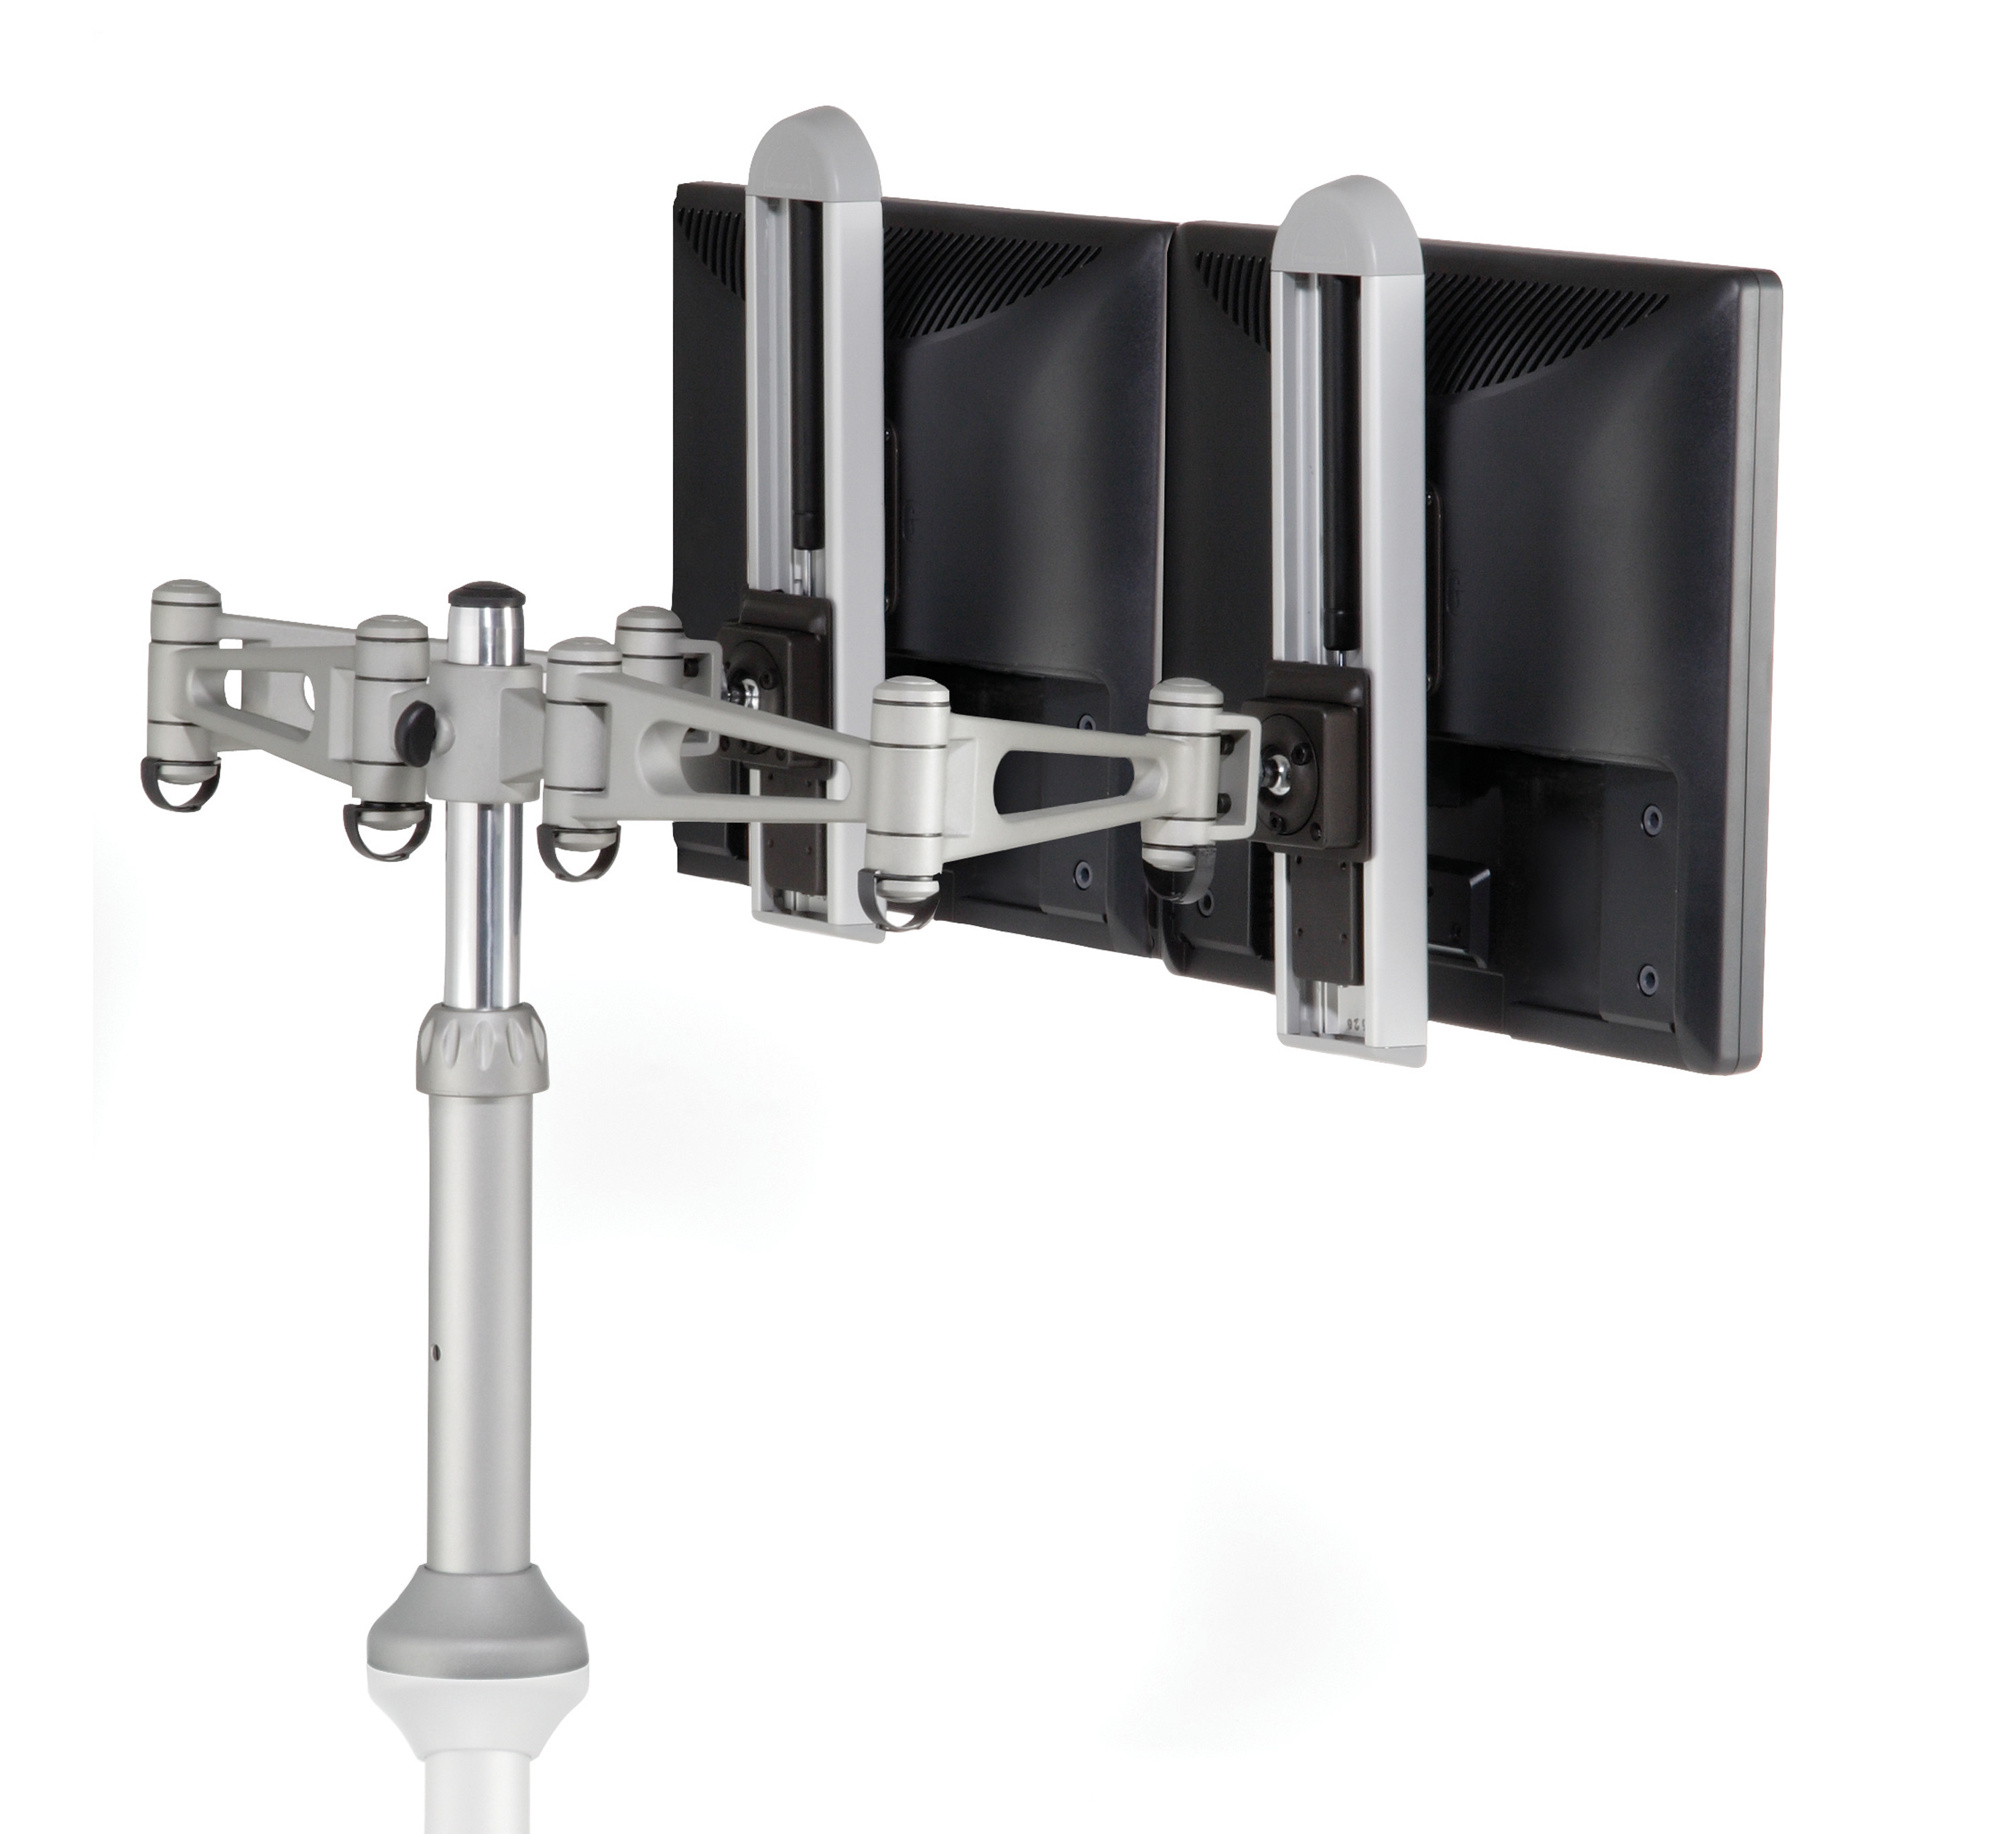 M7 Monitor Arm by Humanscale